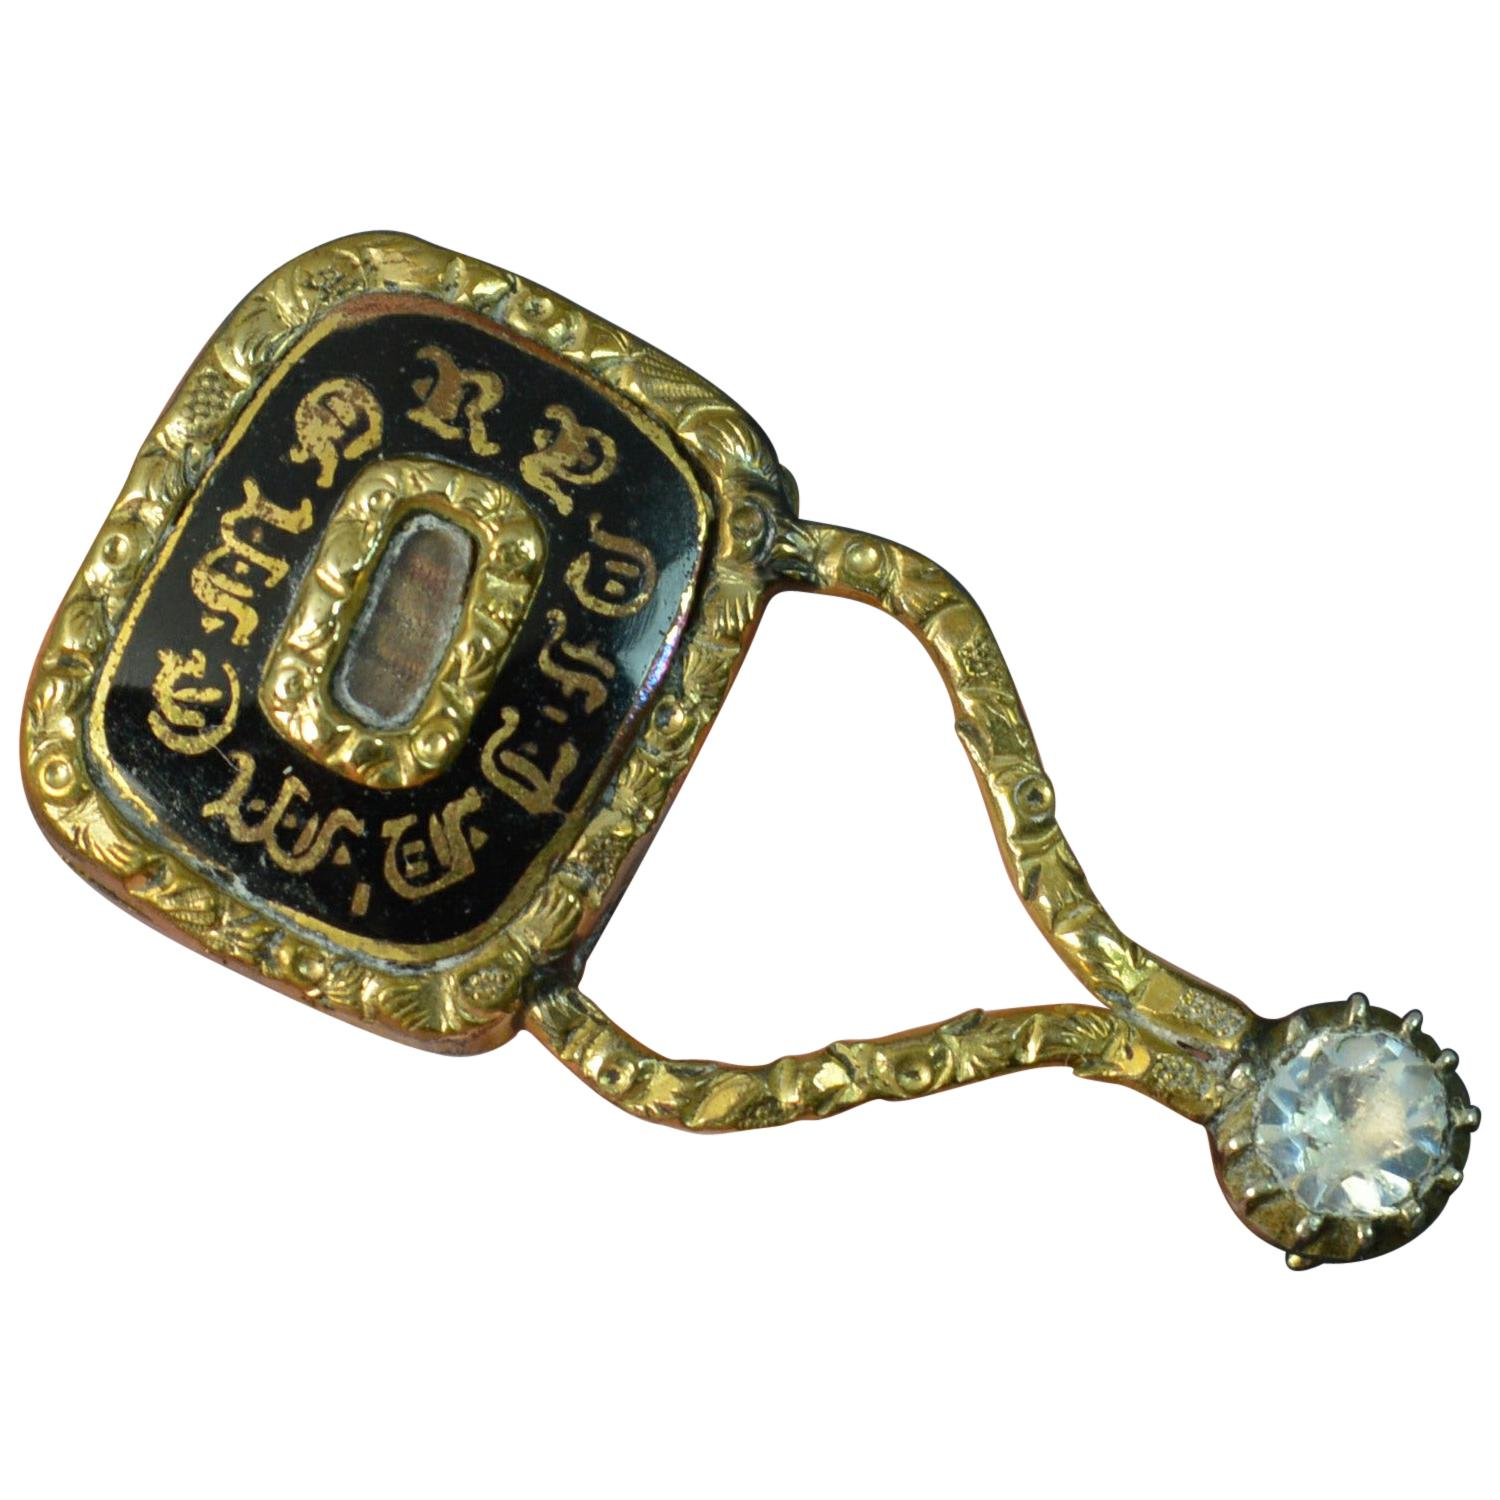 Halley's Comet Mourning in Memory of Enamel Gold Filled Brooch